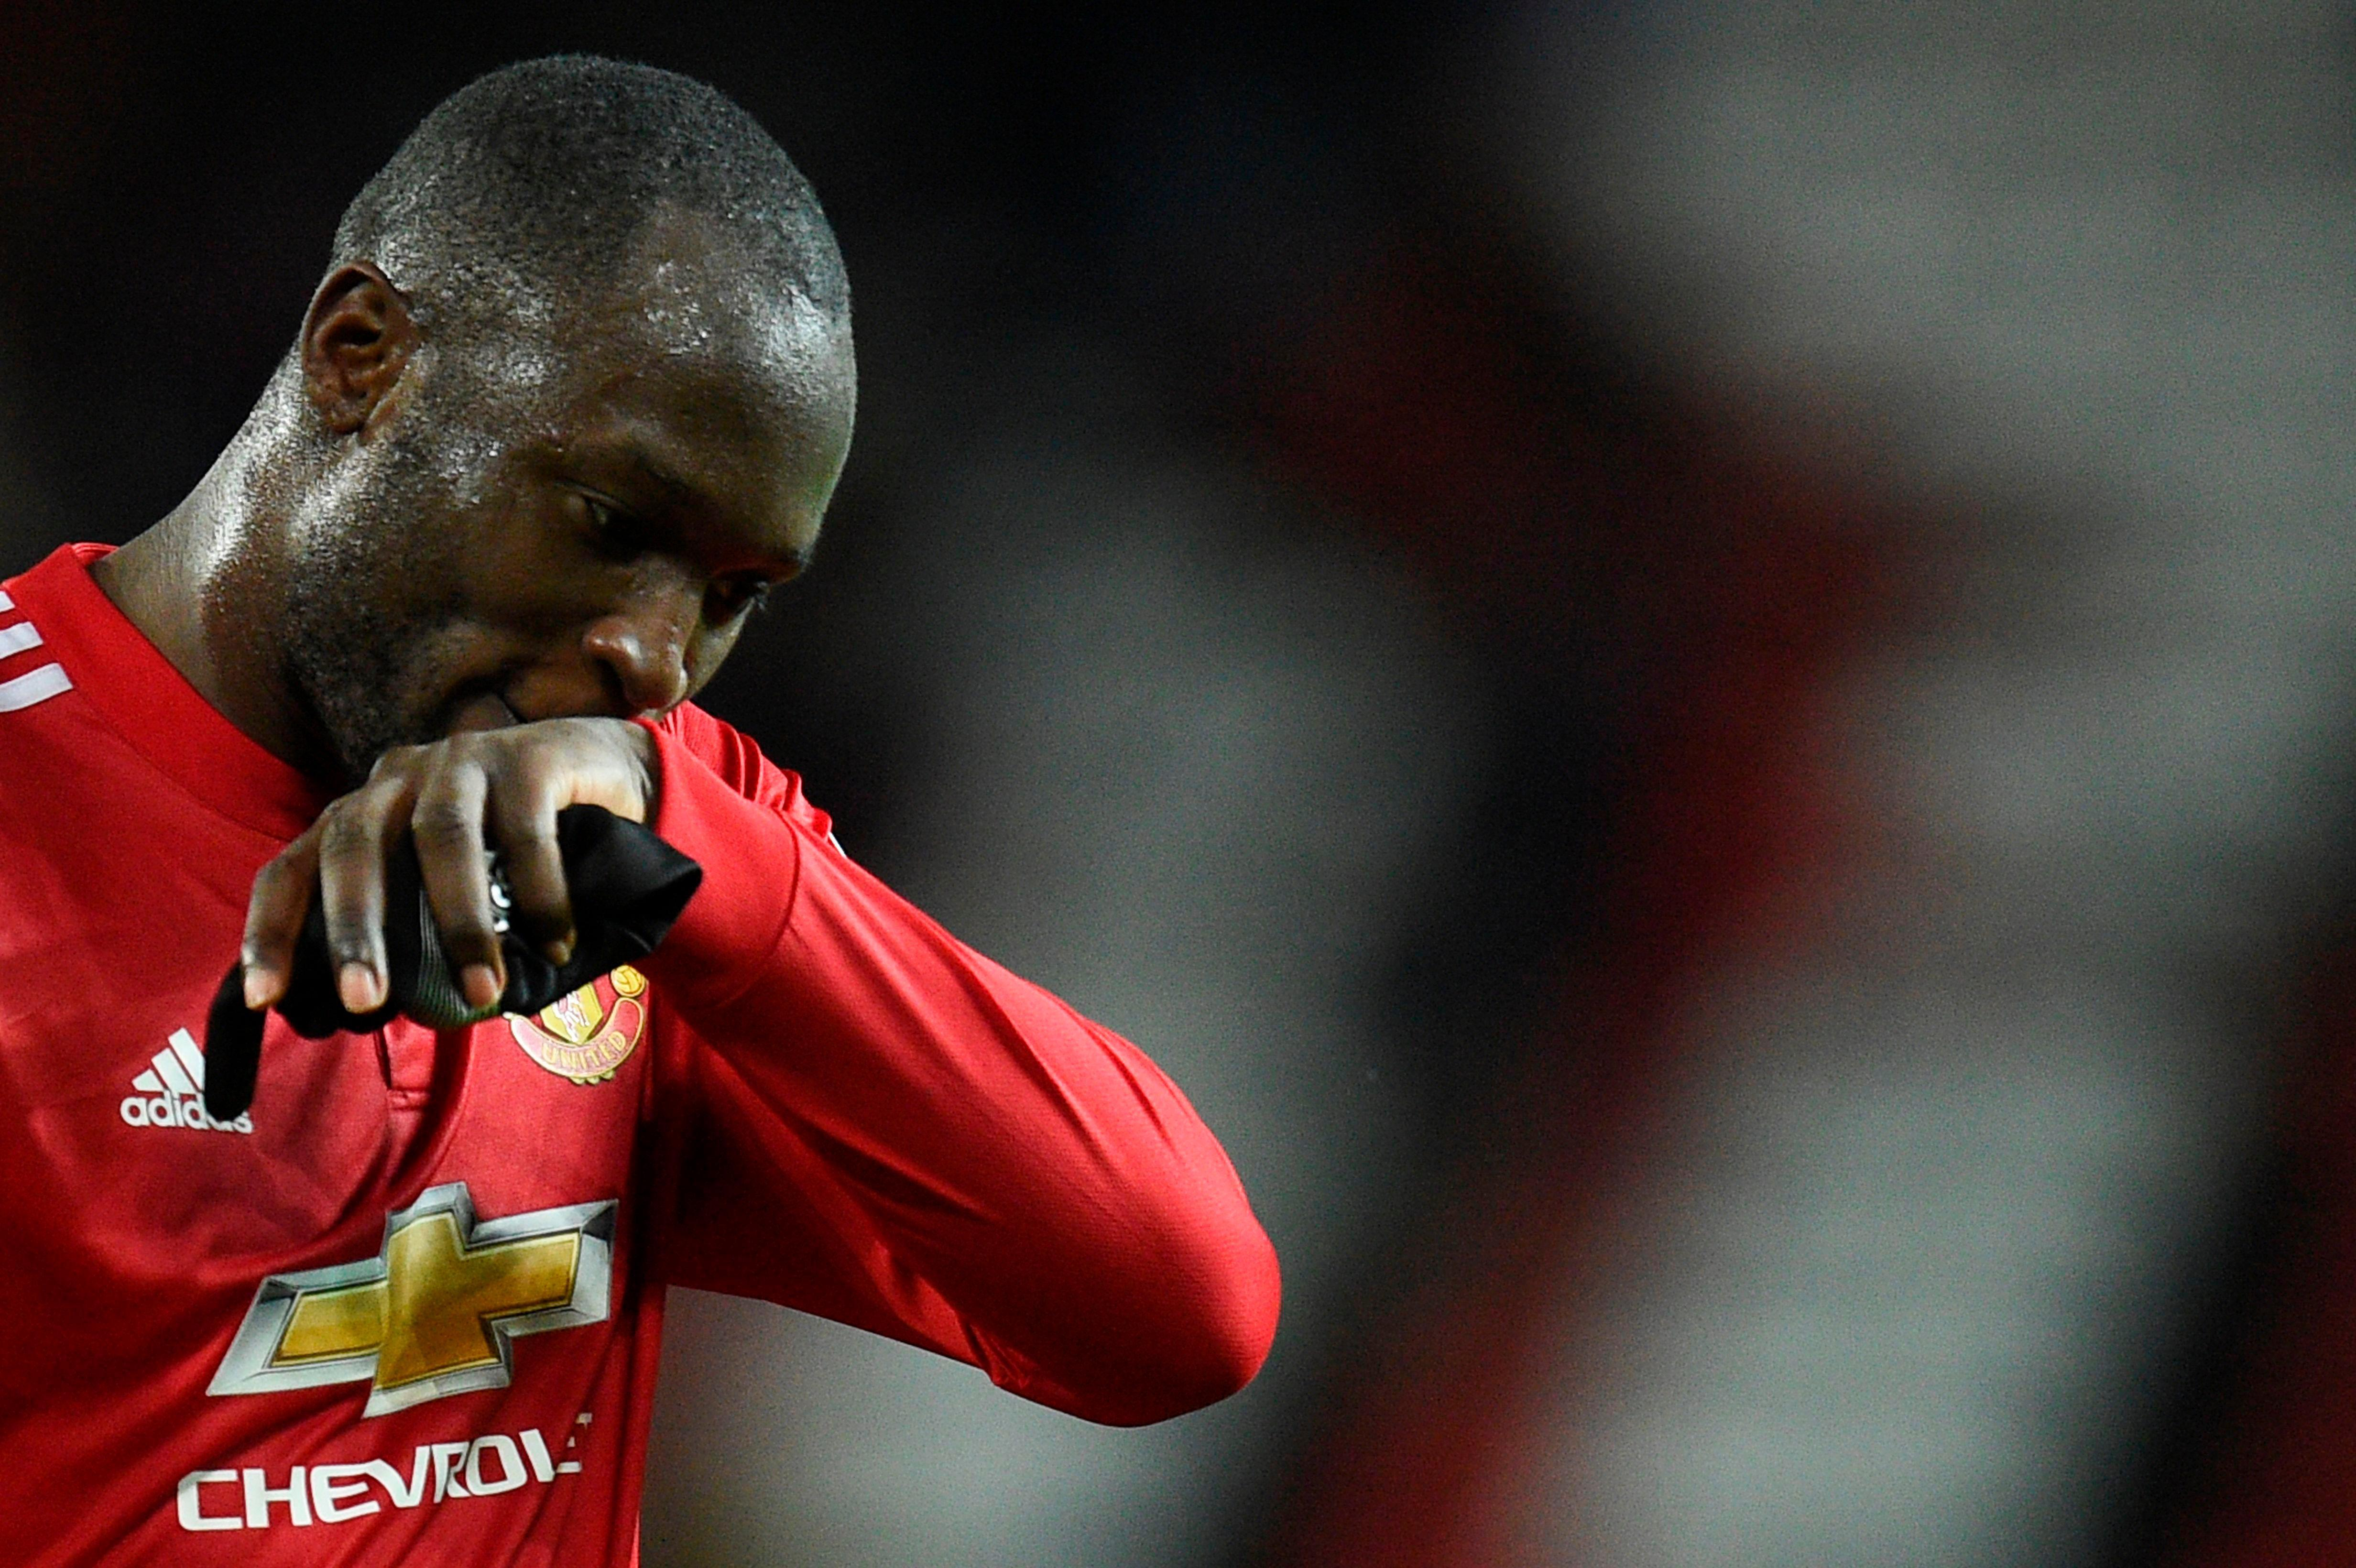 Romelu Lukaku is out of form with just one goal in his last ten appearances